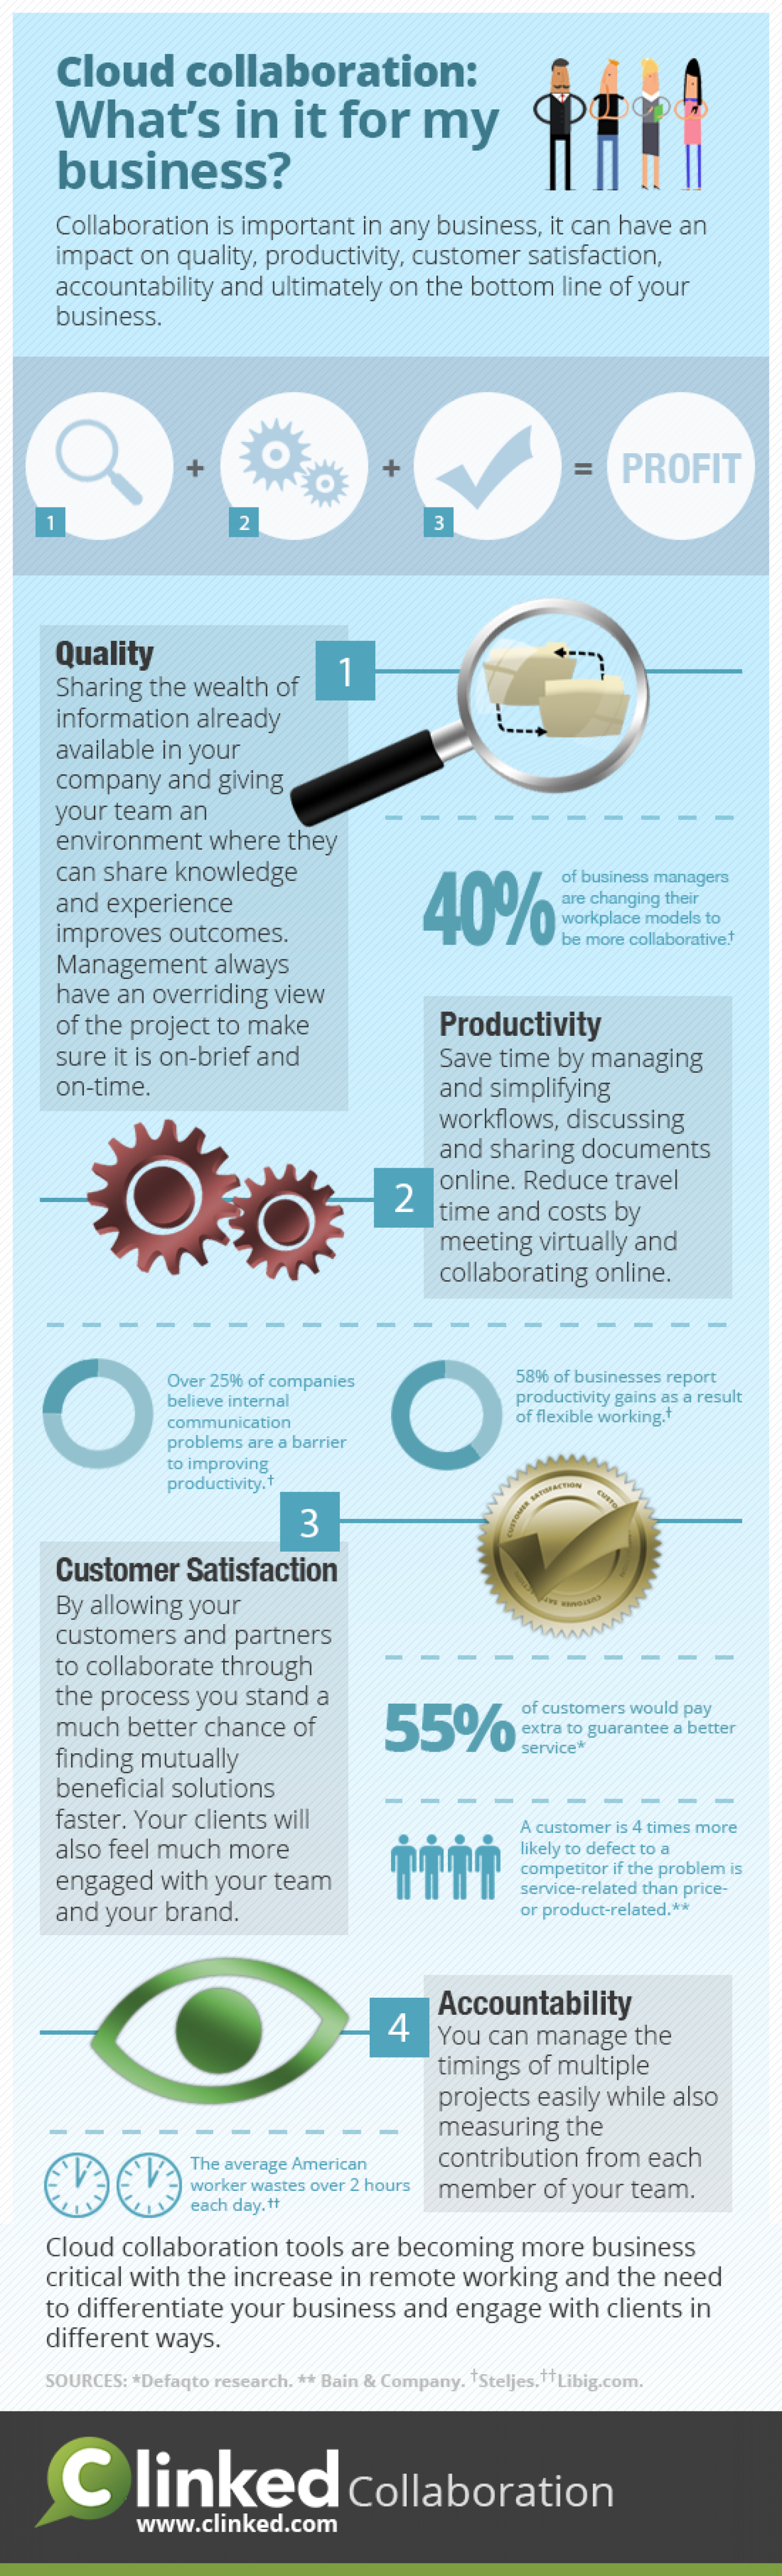 Cloud Collaboration: What's in it for my business? Infographic